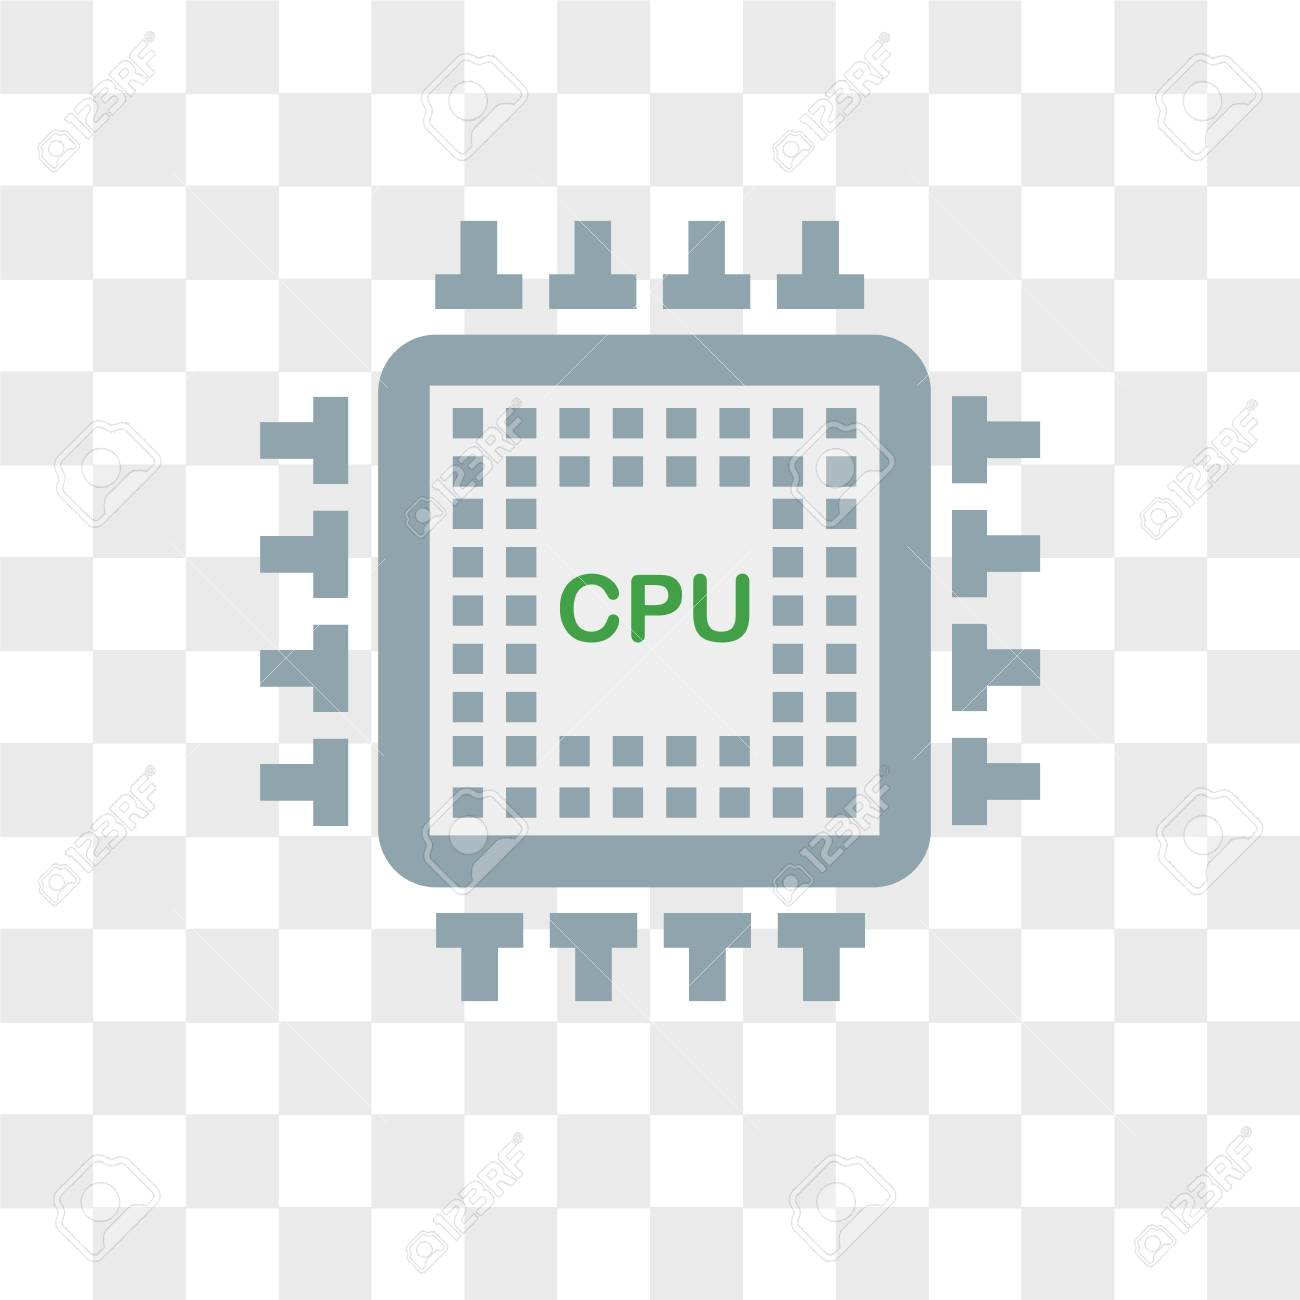 cpu vector icon isolated on transparent background cpu logo royalty free cliparts vectors and stock illustration image 108968681 cpu vector icon isolated on transparent background cpu logo